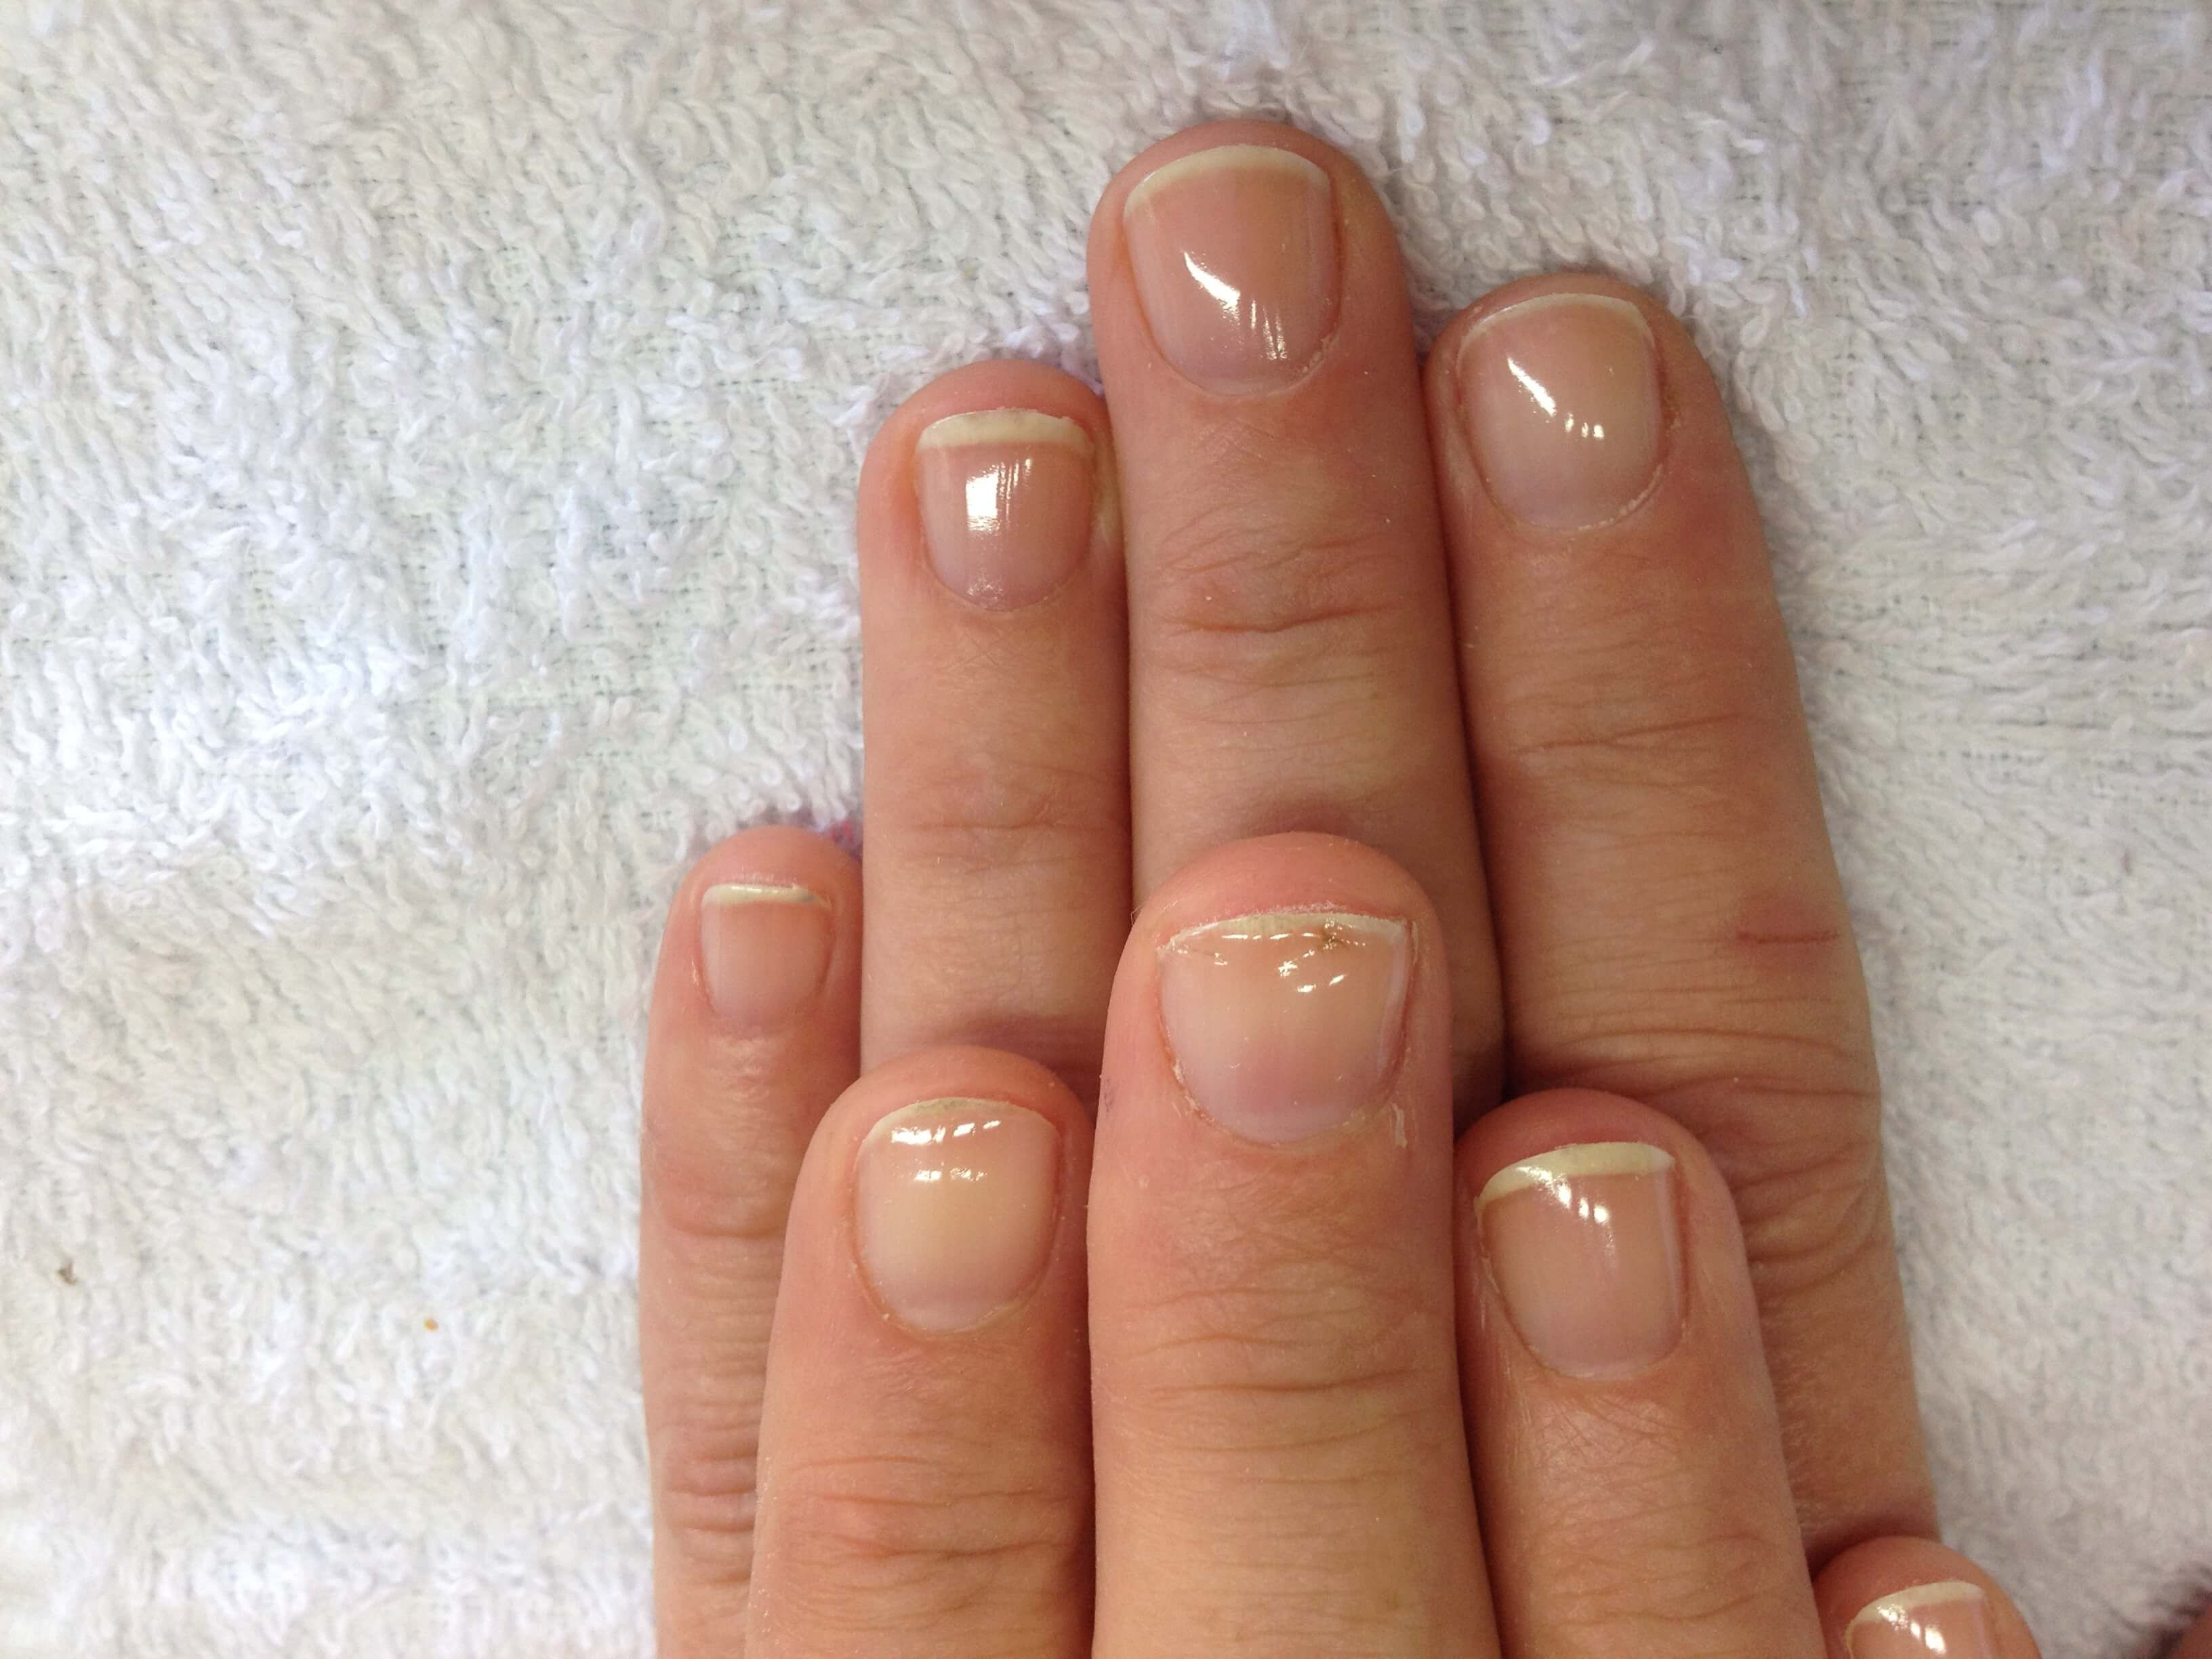 Healing nails after acrylics | Nails | Pinterest | Acrylics and ...